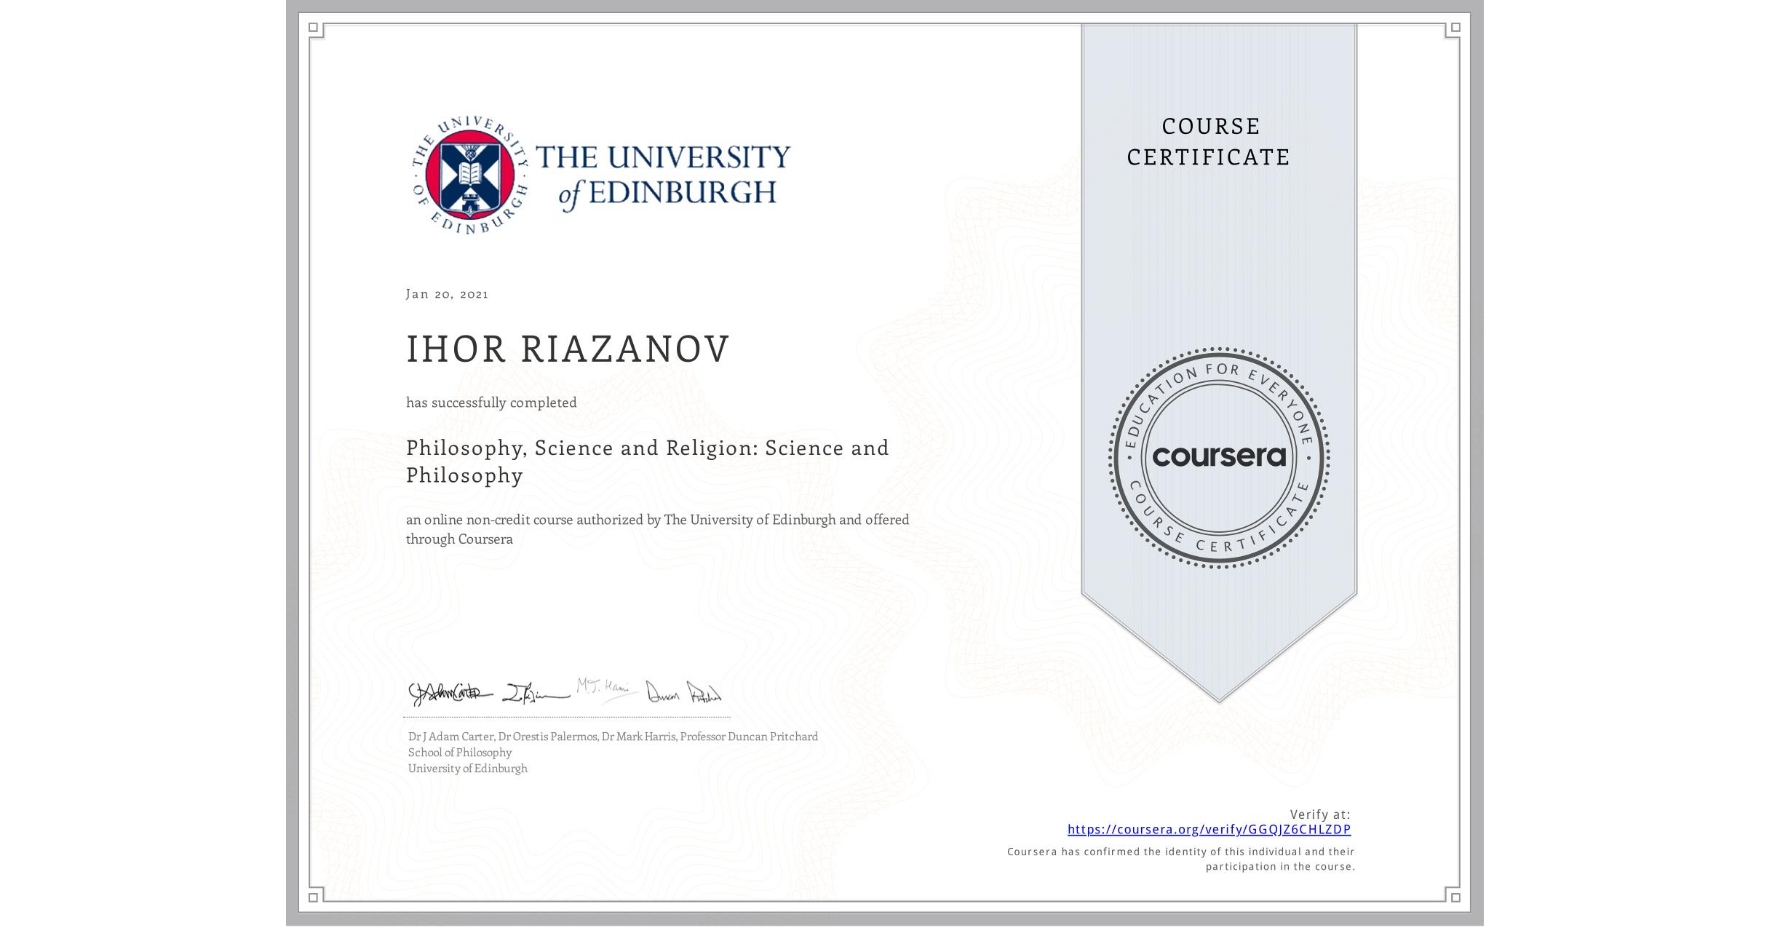 View certificate for IHOR RIAZANOV, Philosophy, Science and Religion: Science and Philosophy, an online non-credit course authorized by The University of Edinburgh and offered through Coursera